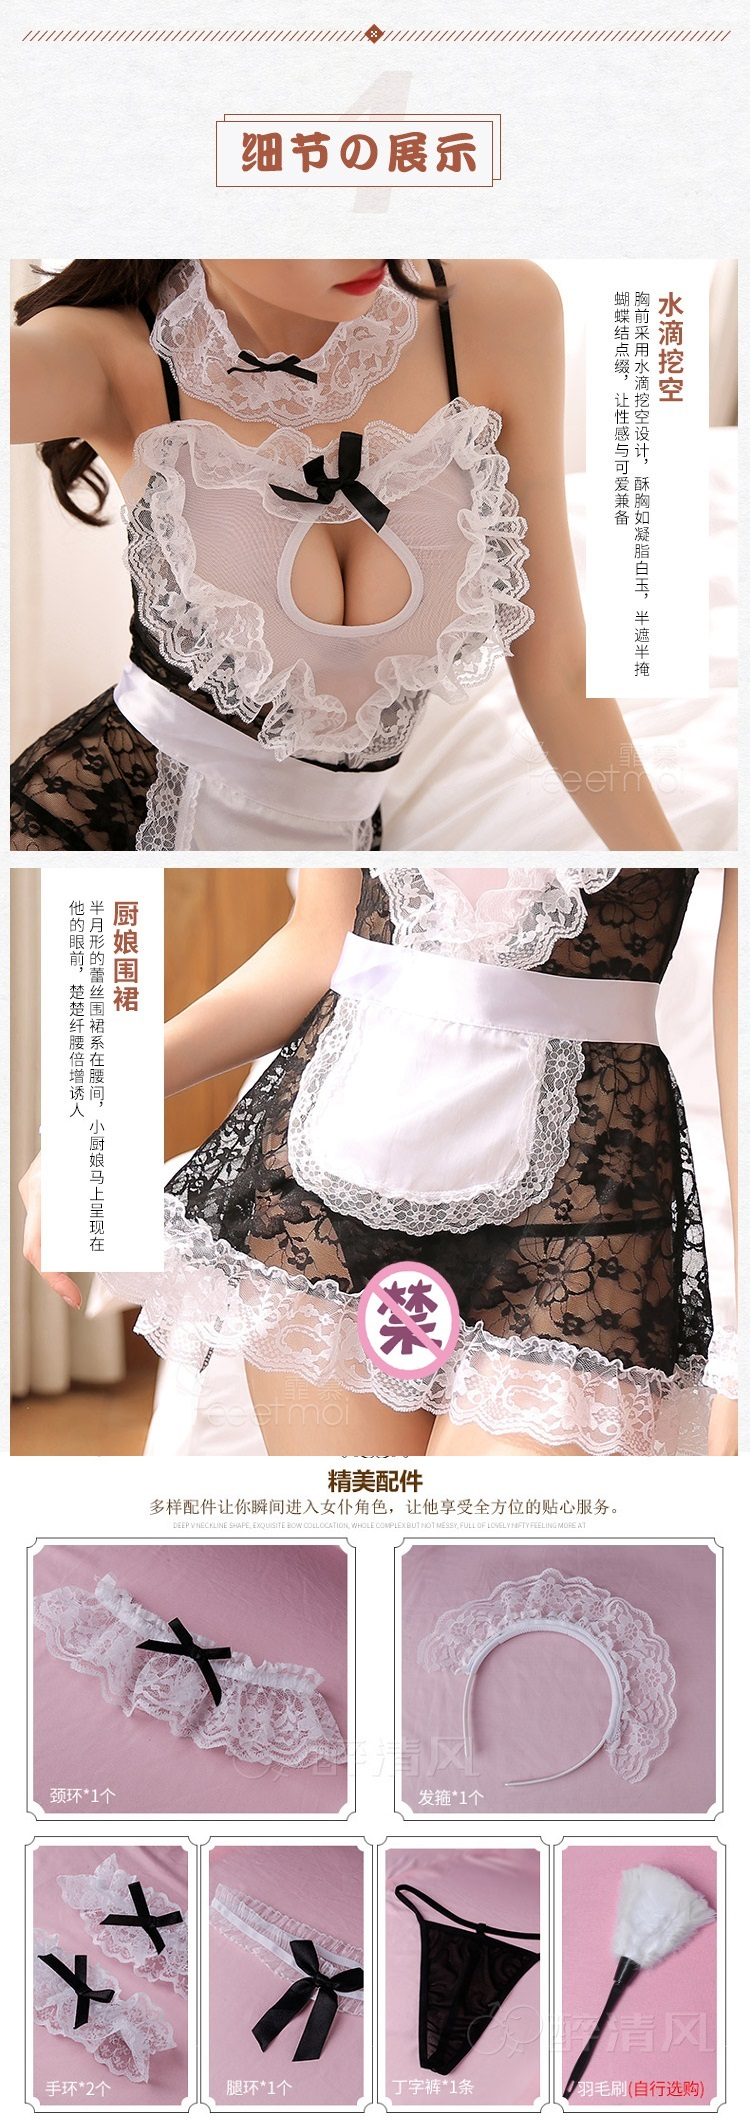 Temptation Sexy Maid Service MD009